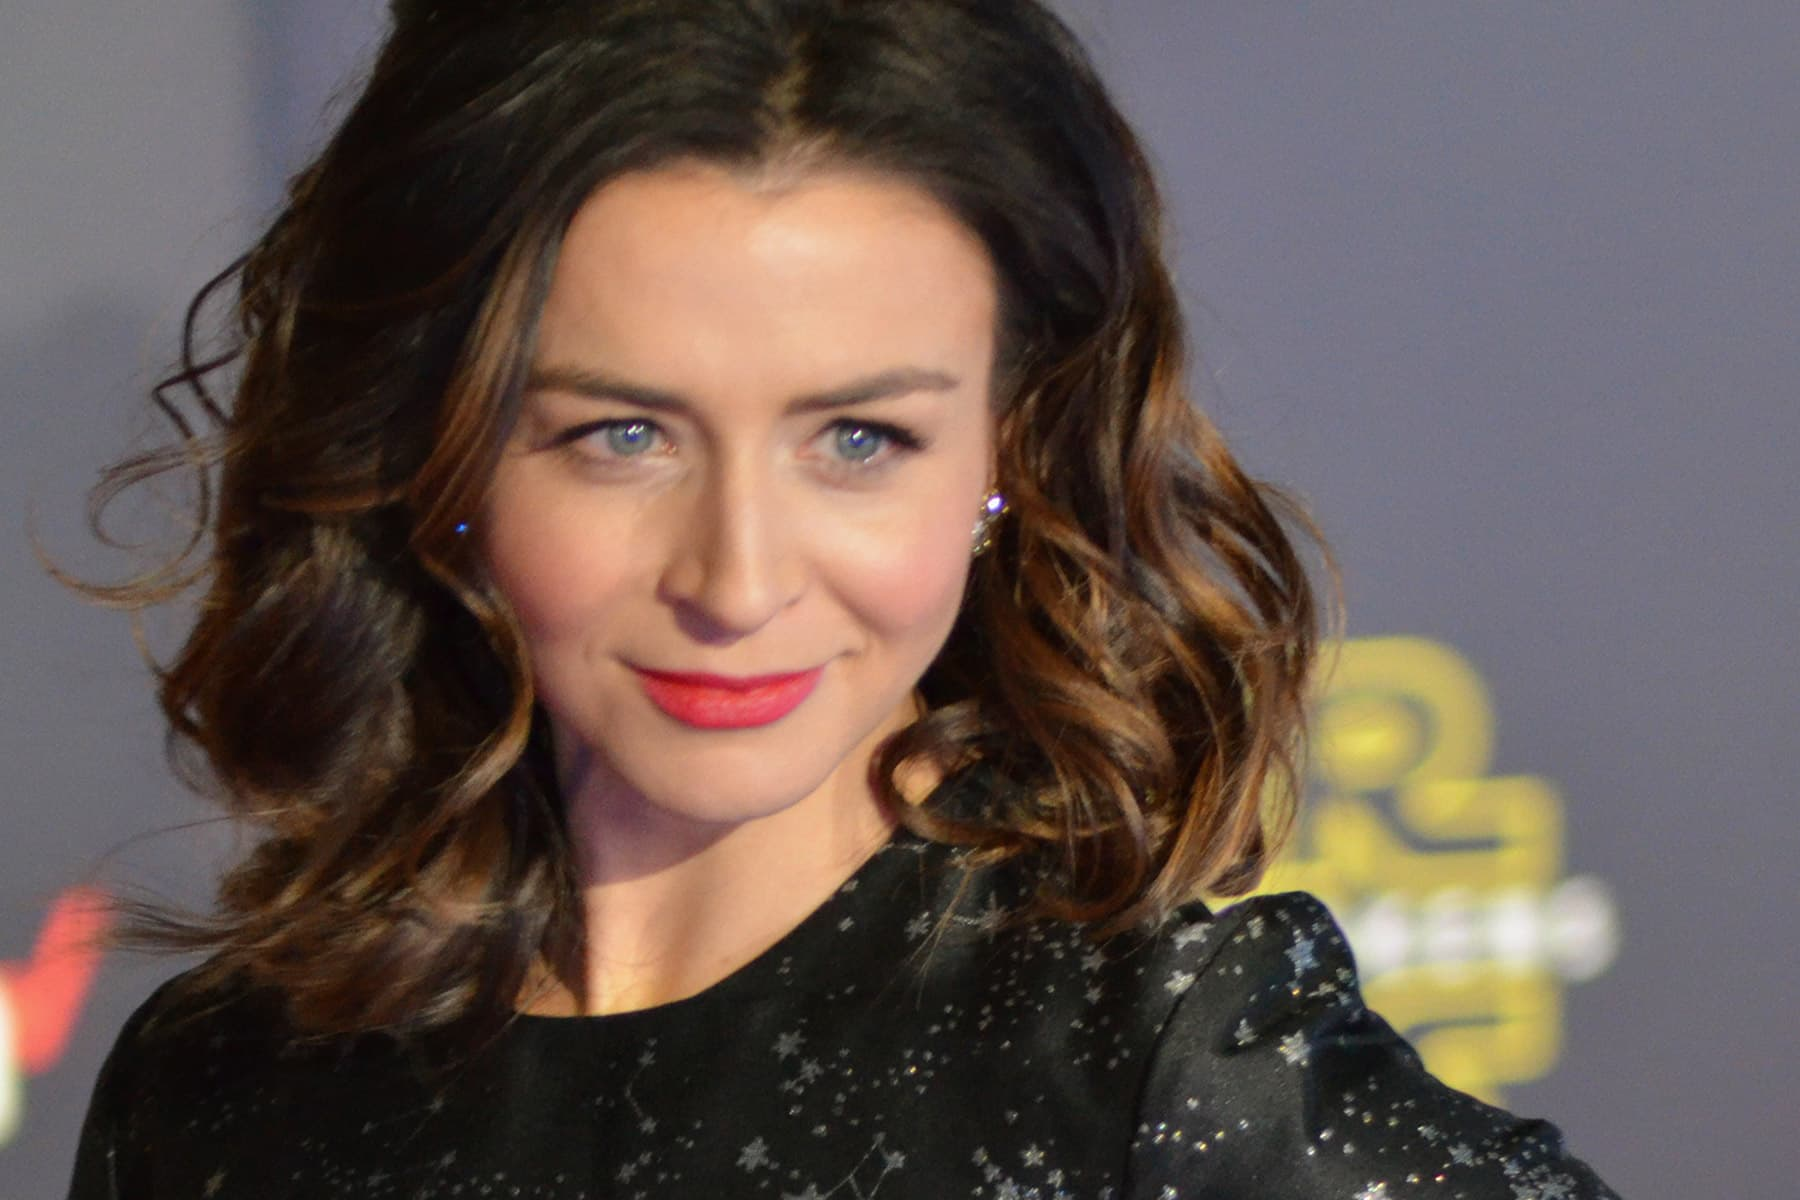 10 Questions With Caterina Scorsone